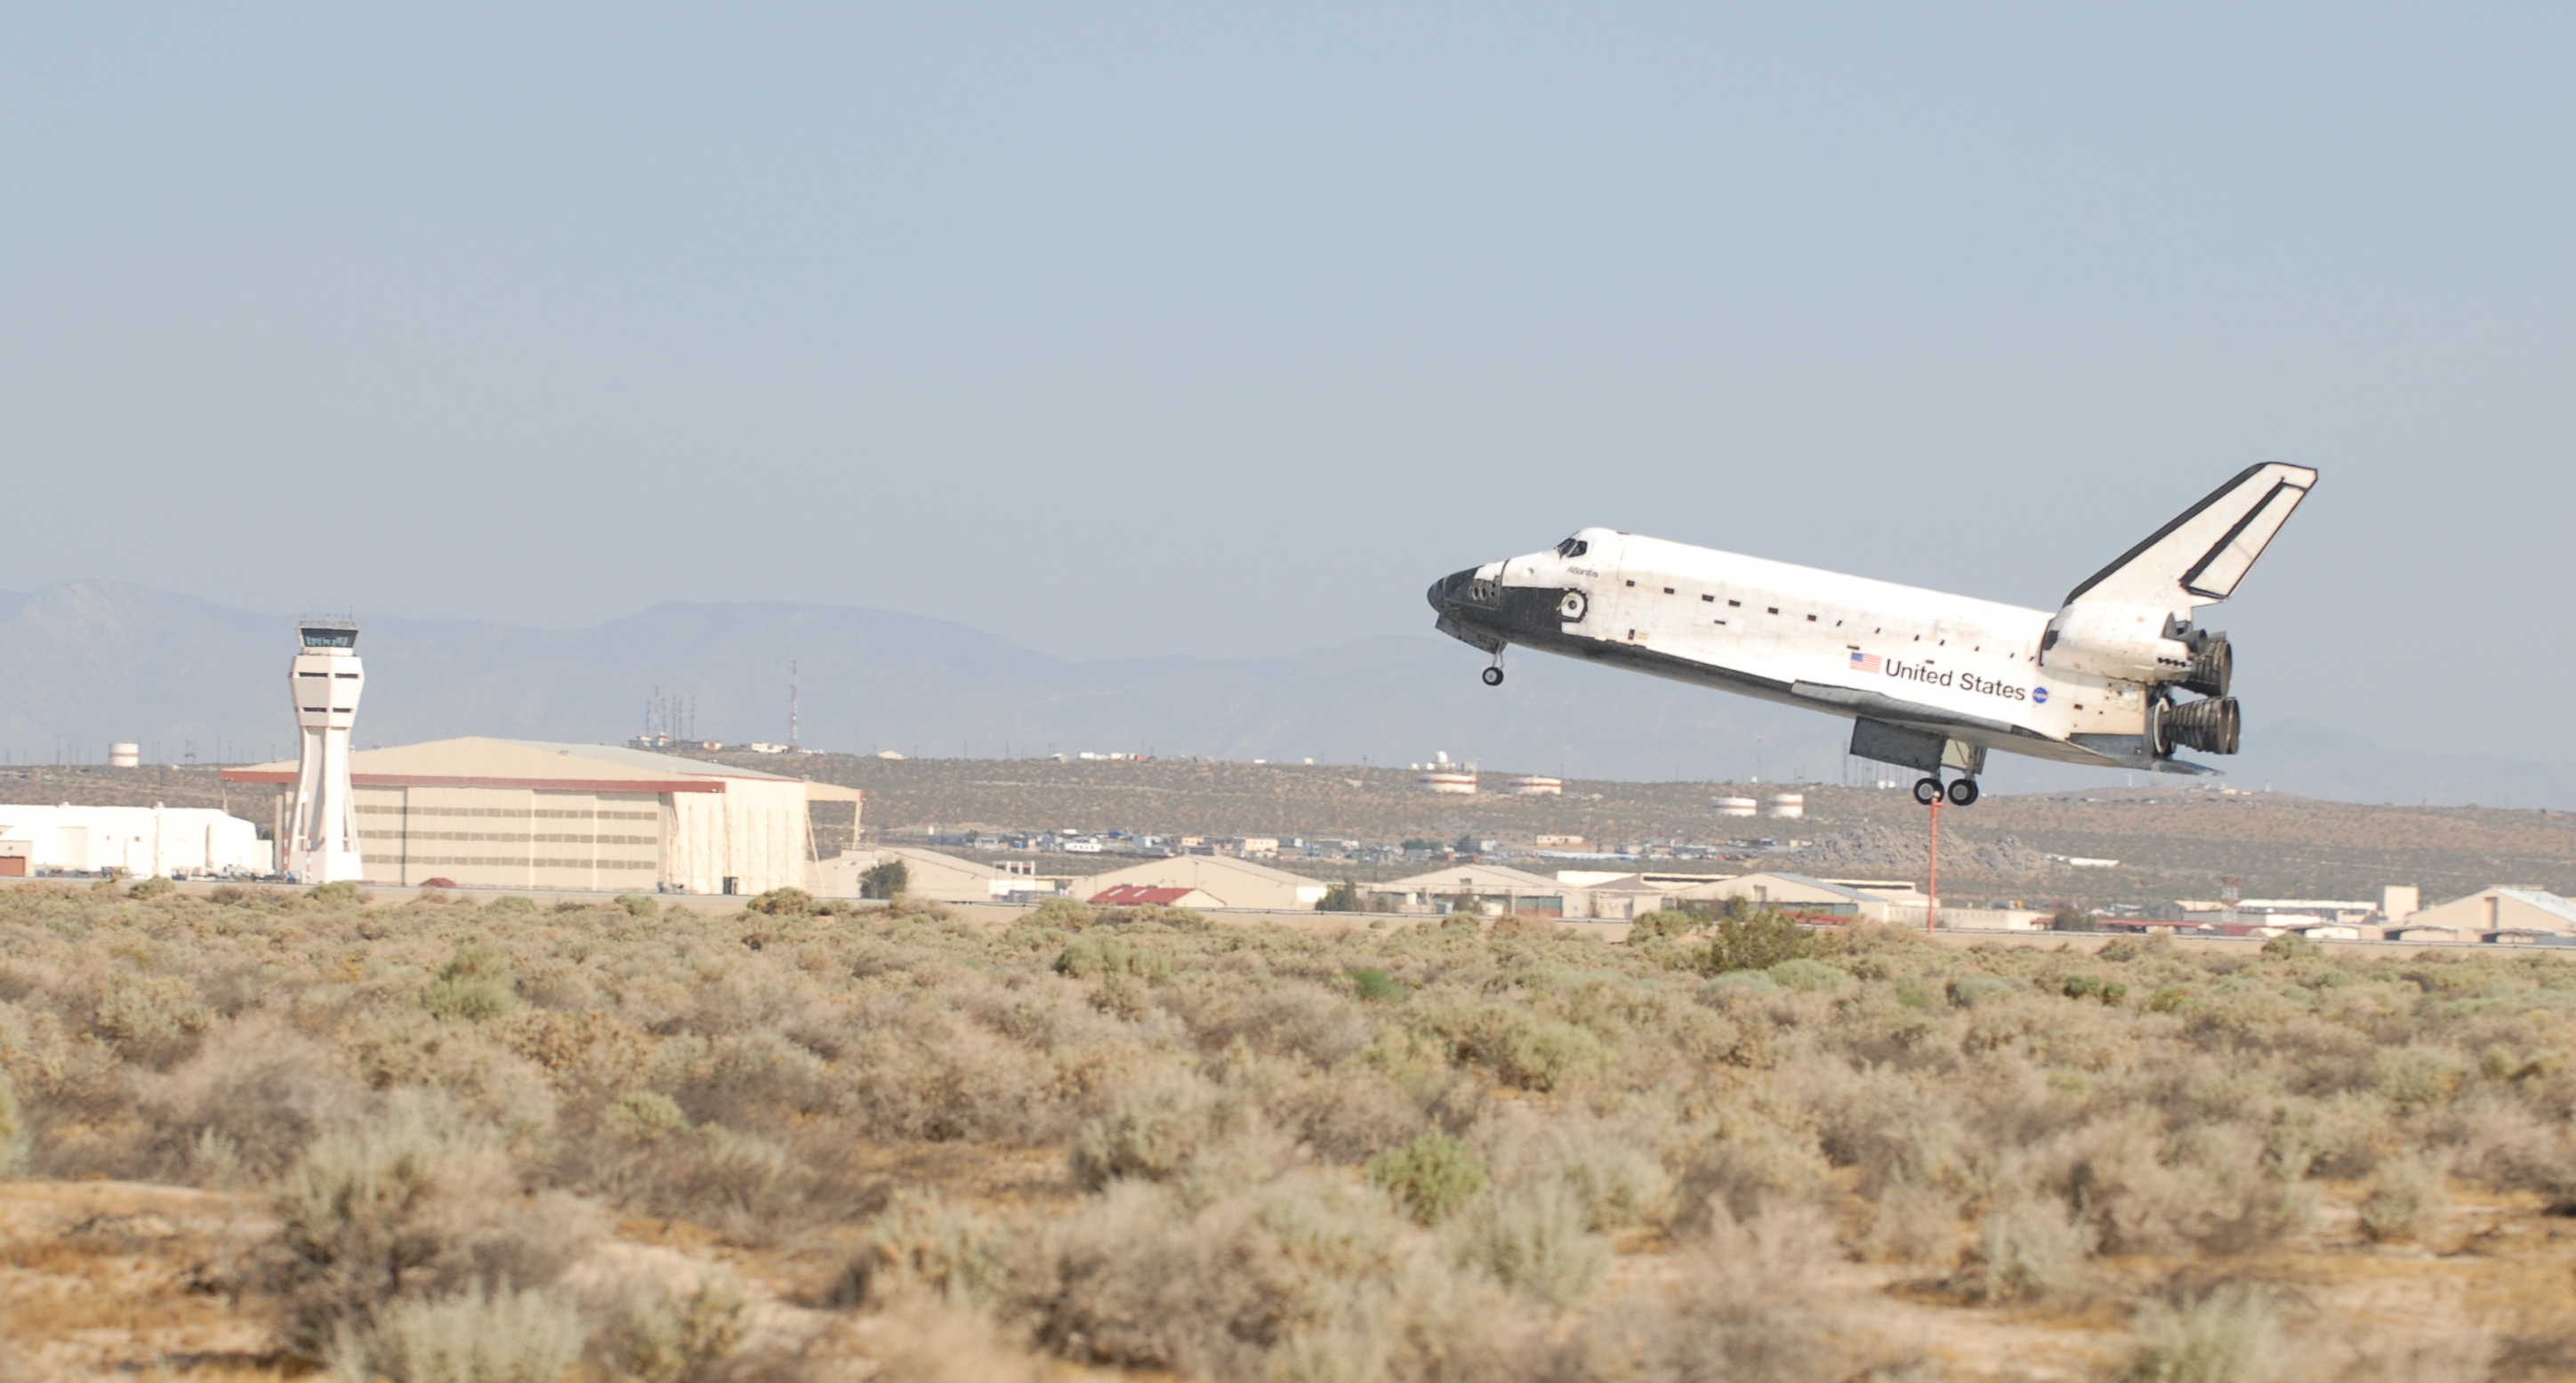 space shuttle contingency landing sites - photo #7